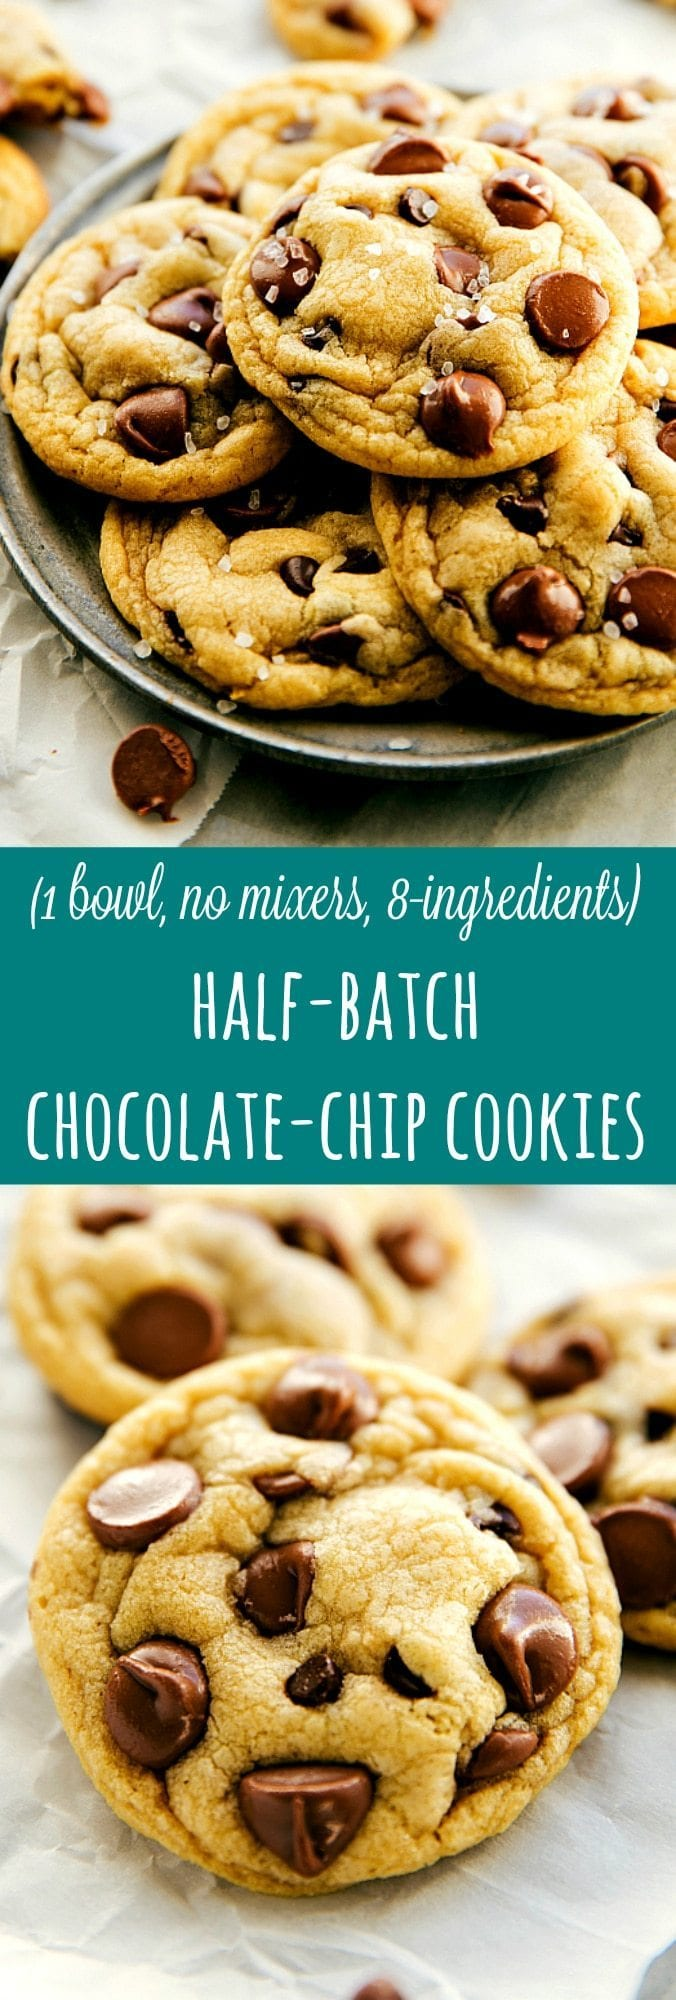 Half Batch Chocolate Chip Cookies